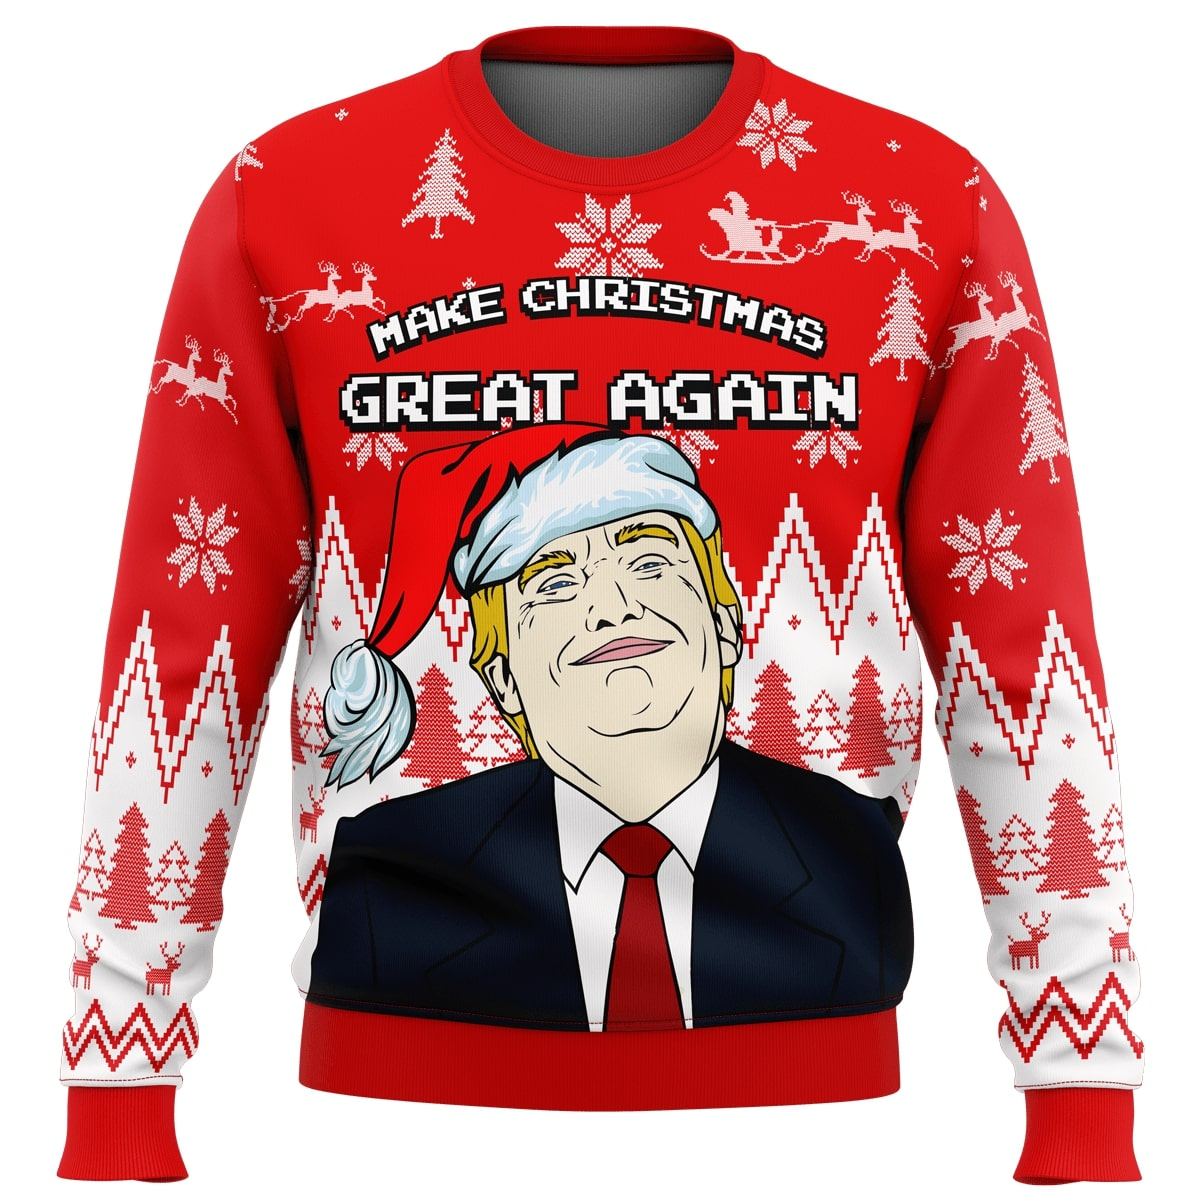 make christmas great again trump all over printed ugly christmas sweater 2